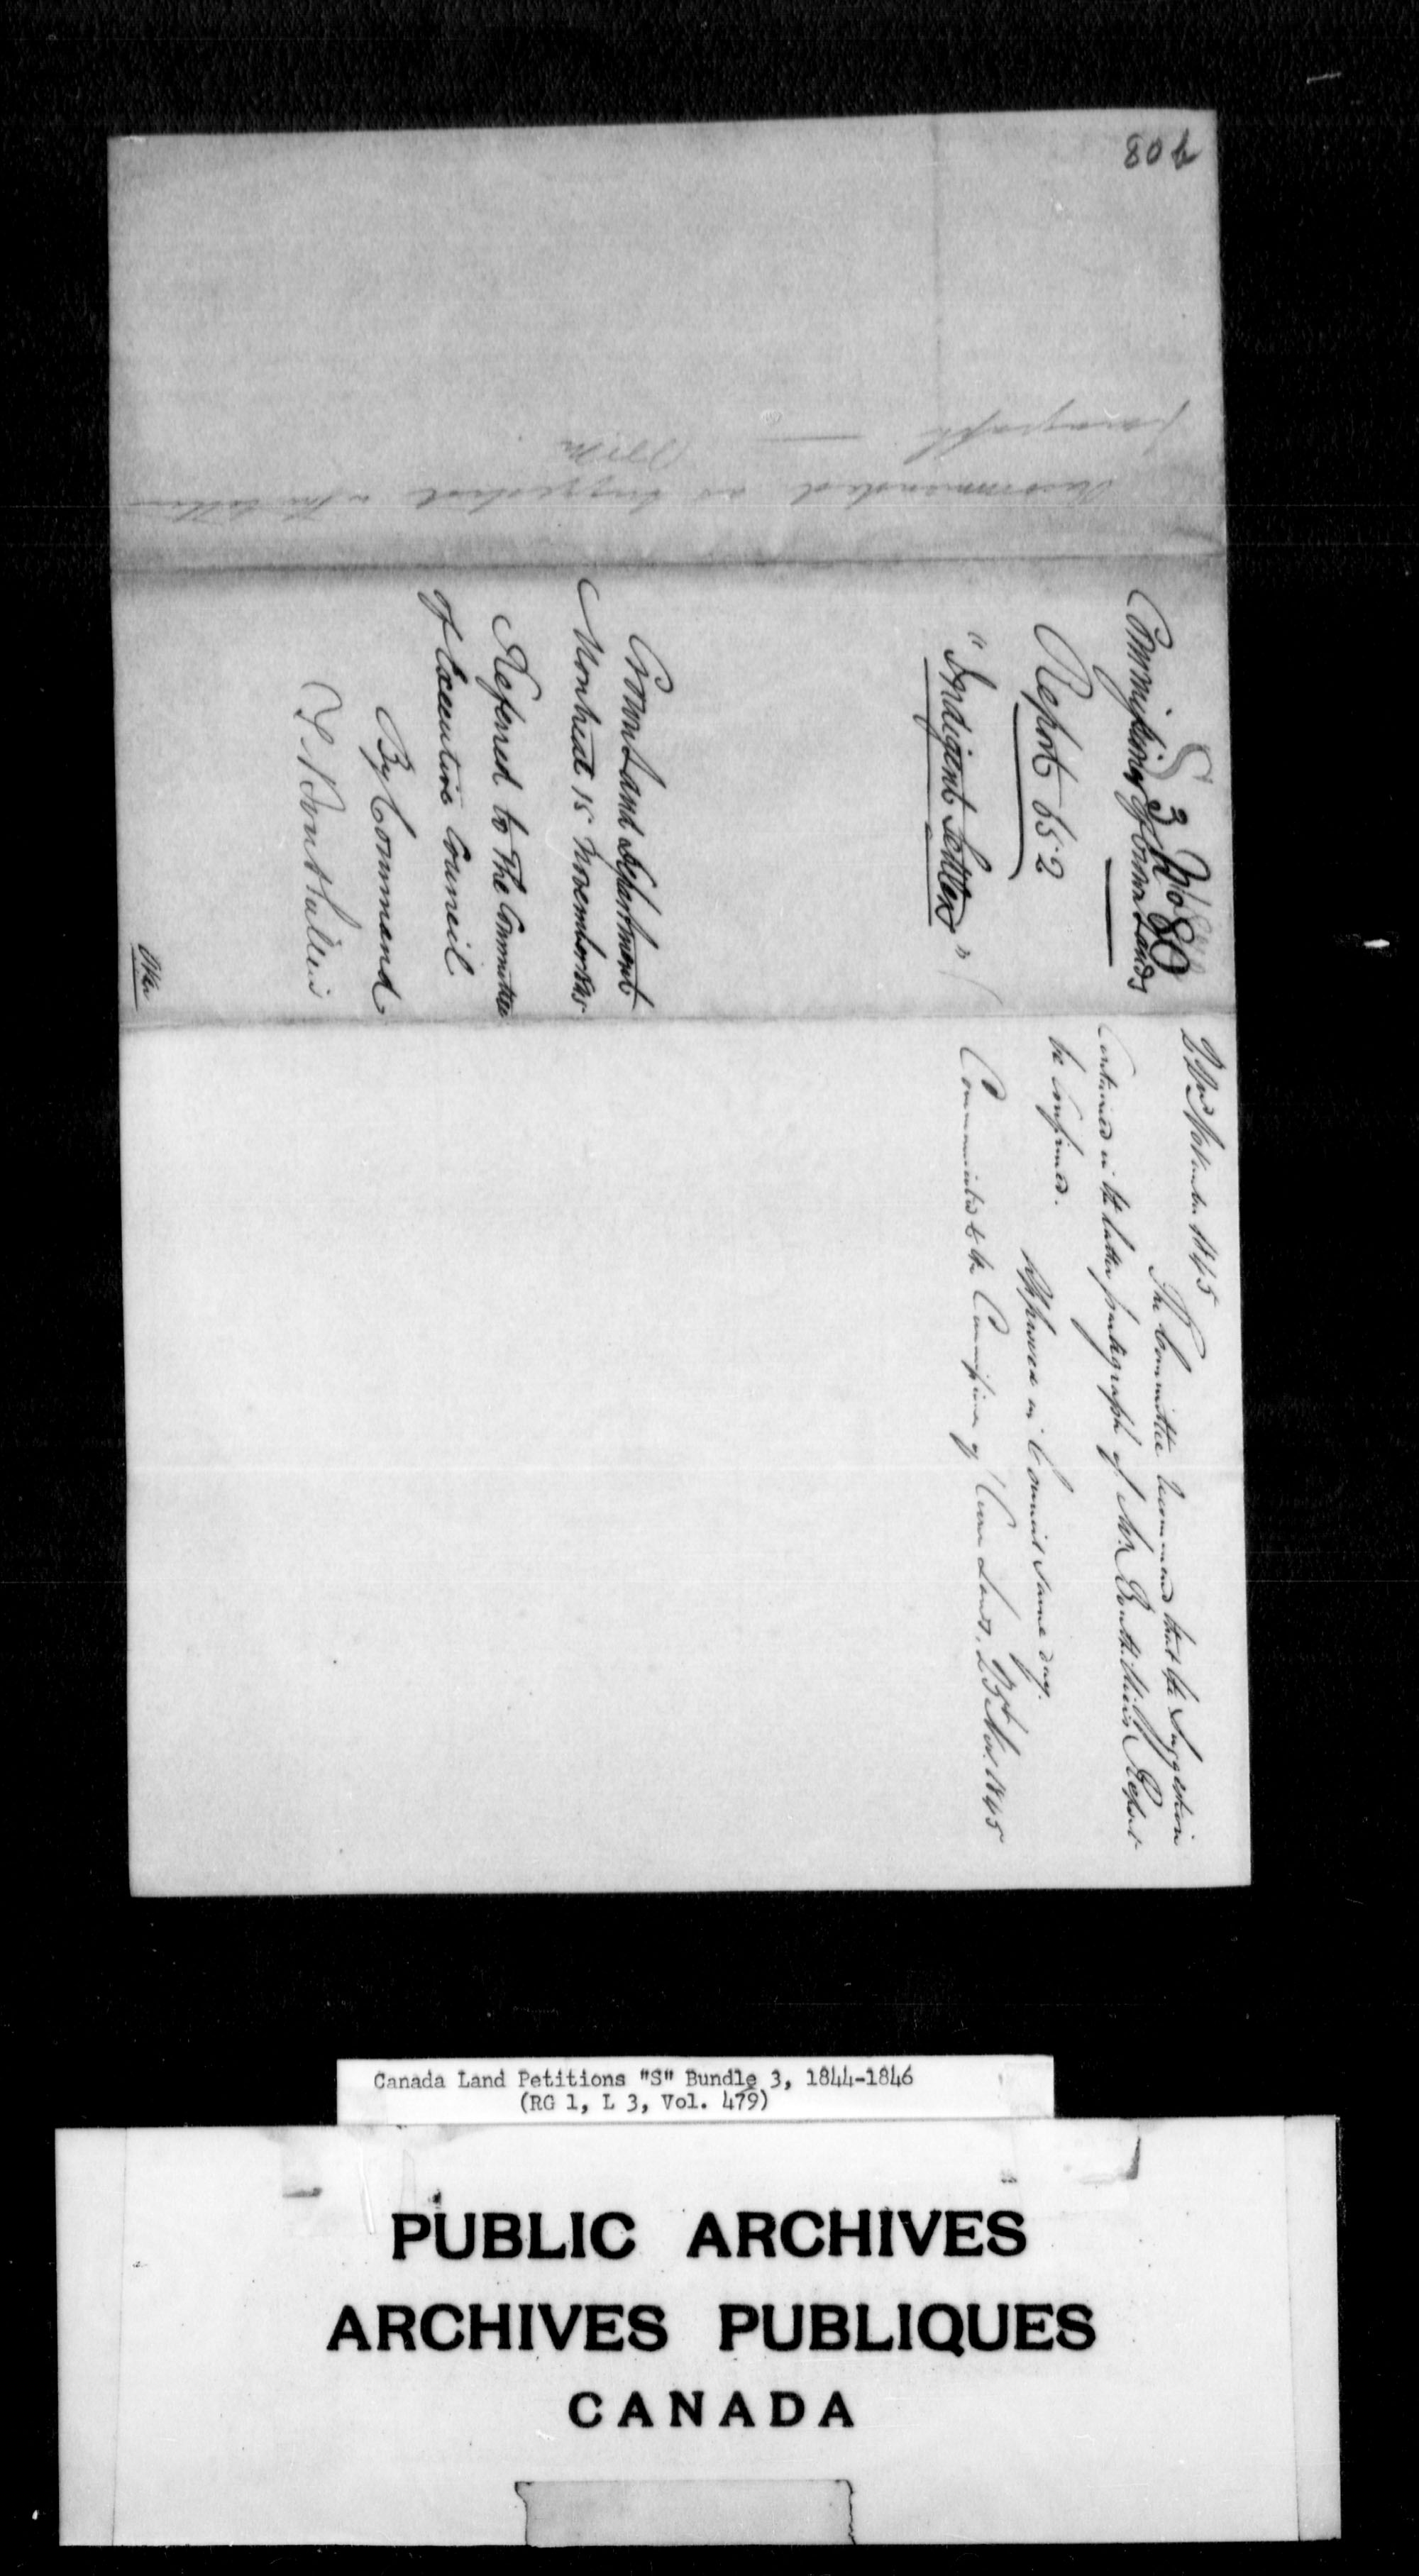 Title: Upper Canada Land Petitions (1763-1865) - Mikan Number: 205131 - Microform: c-2823